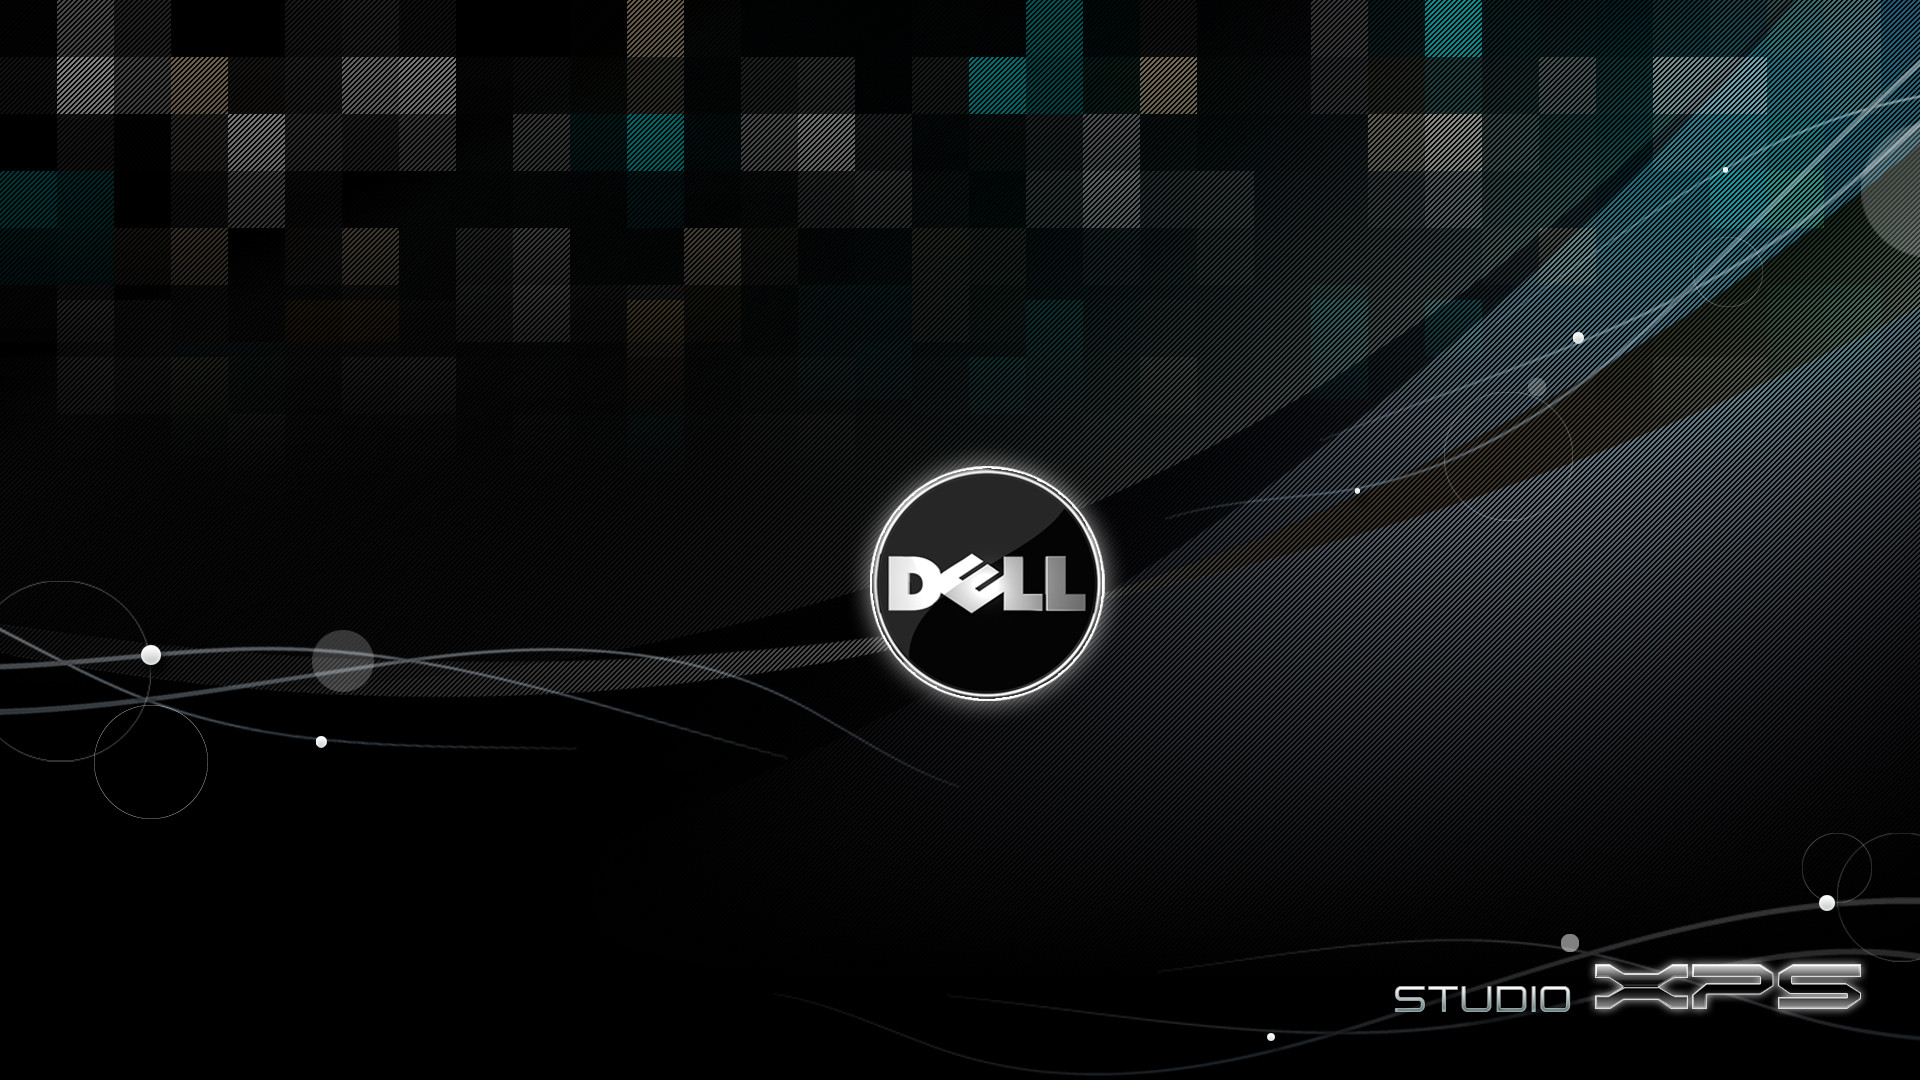 desktop wallpaper dell 38 - photo #8